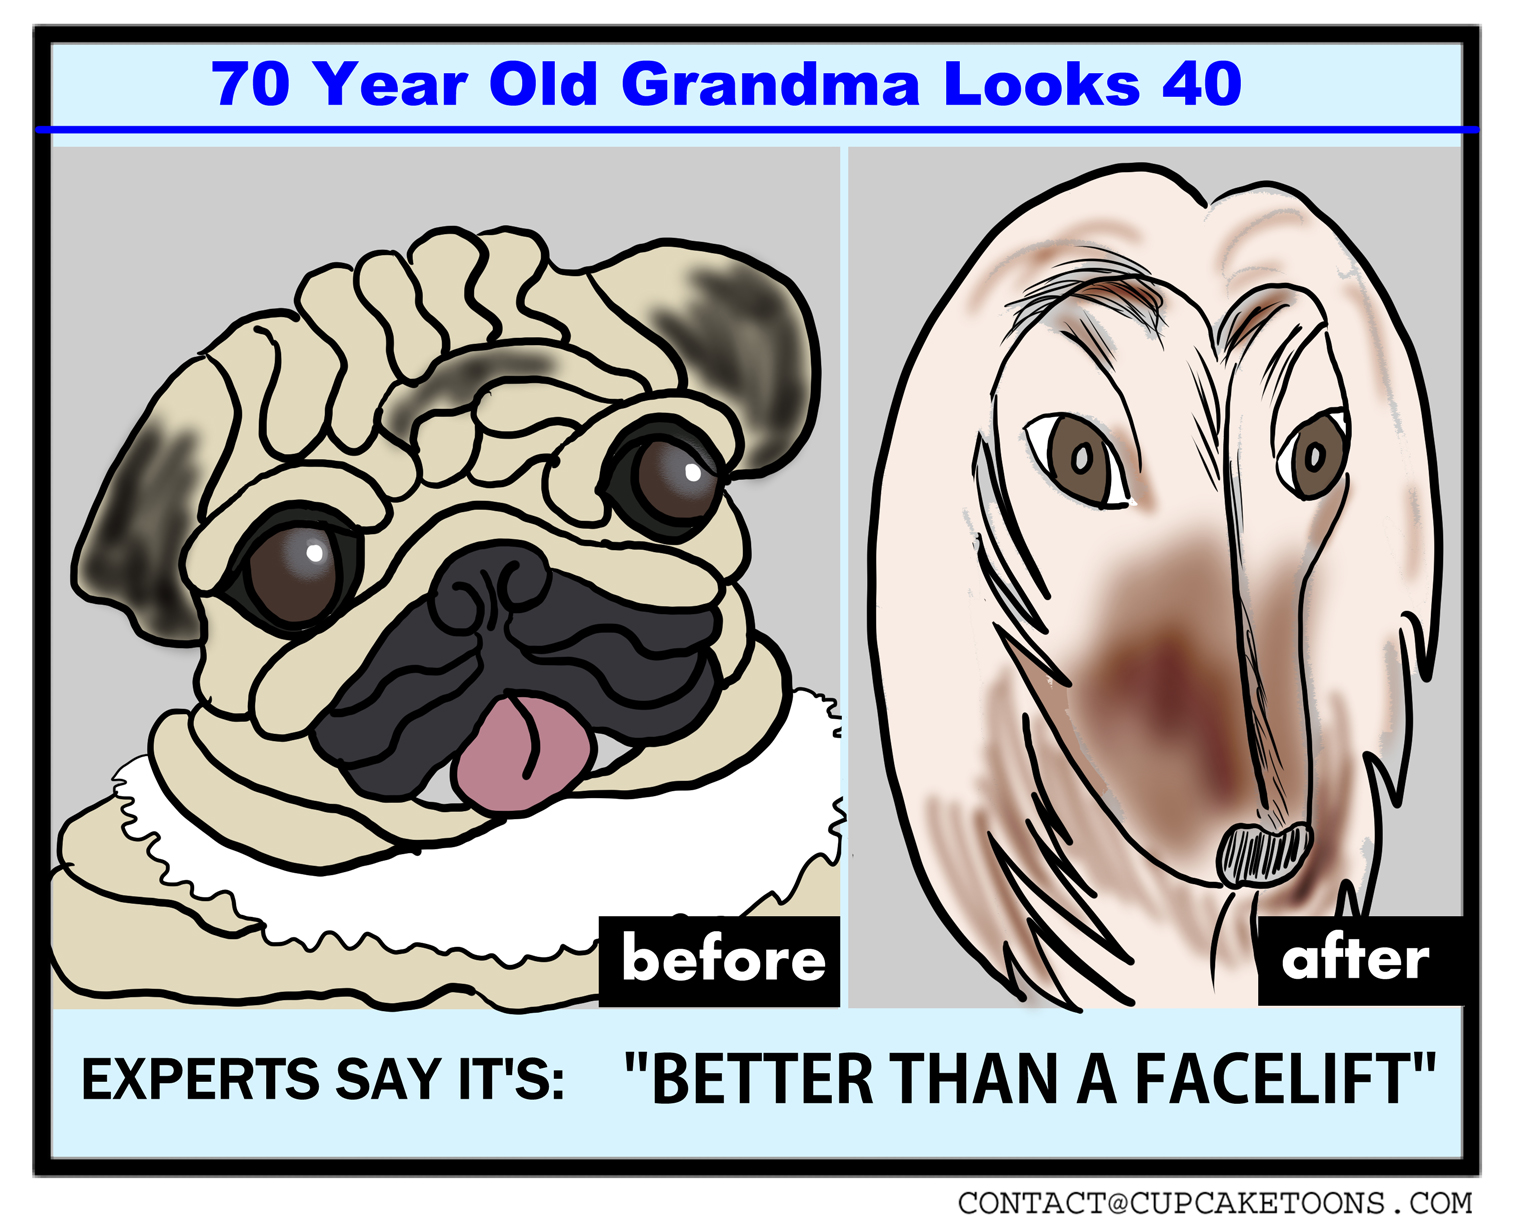 Wrinkle Cream Ad for Dogs